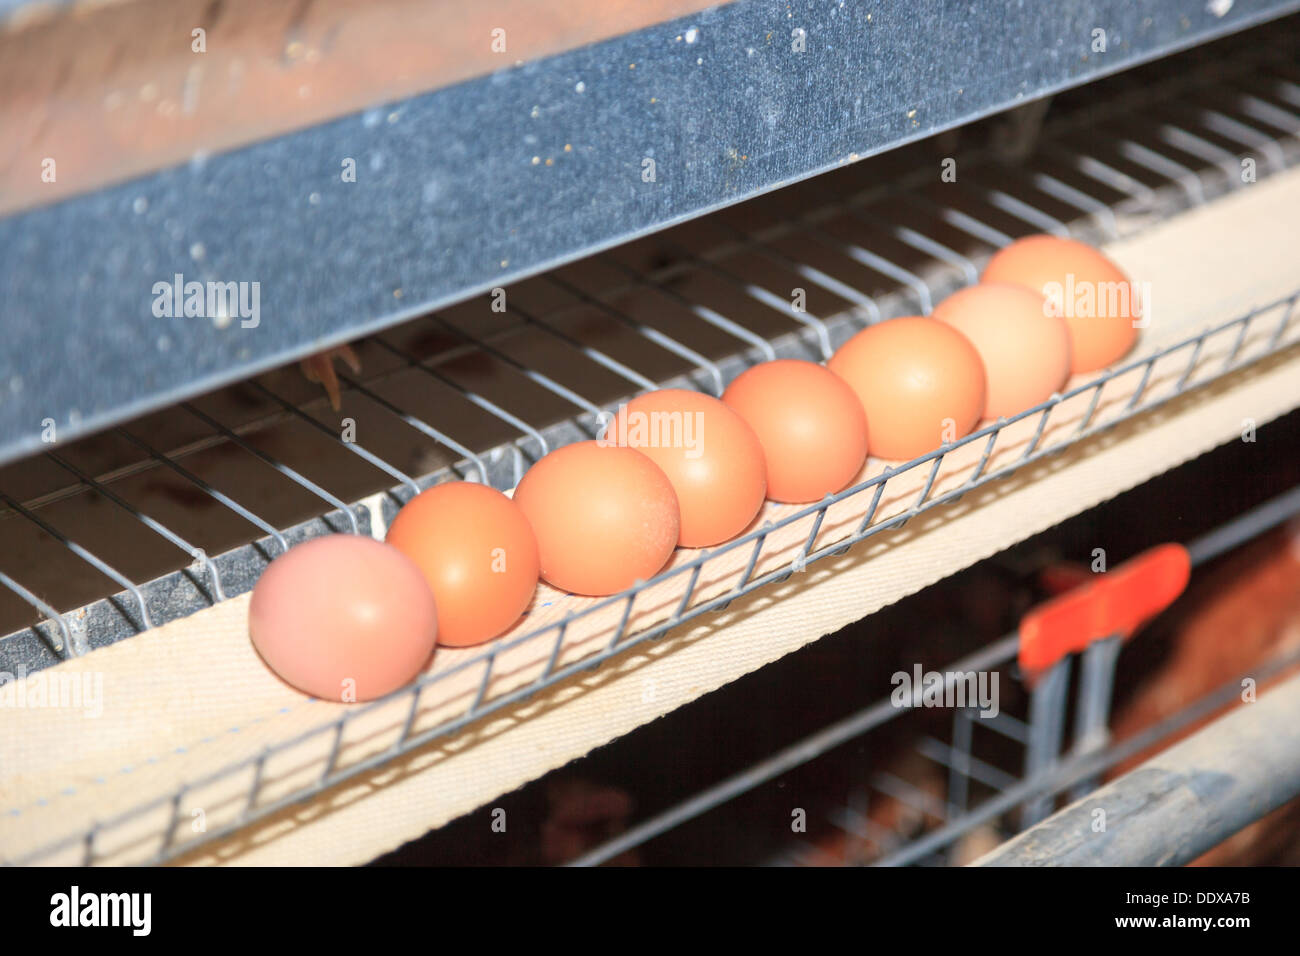 Poultry Farm. Industrial production of edible egg. - Stock Image